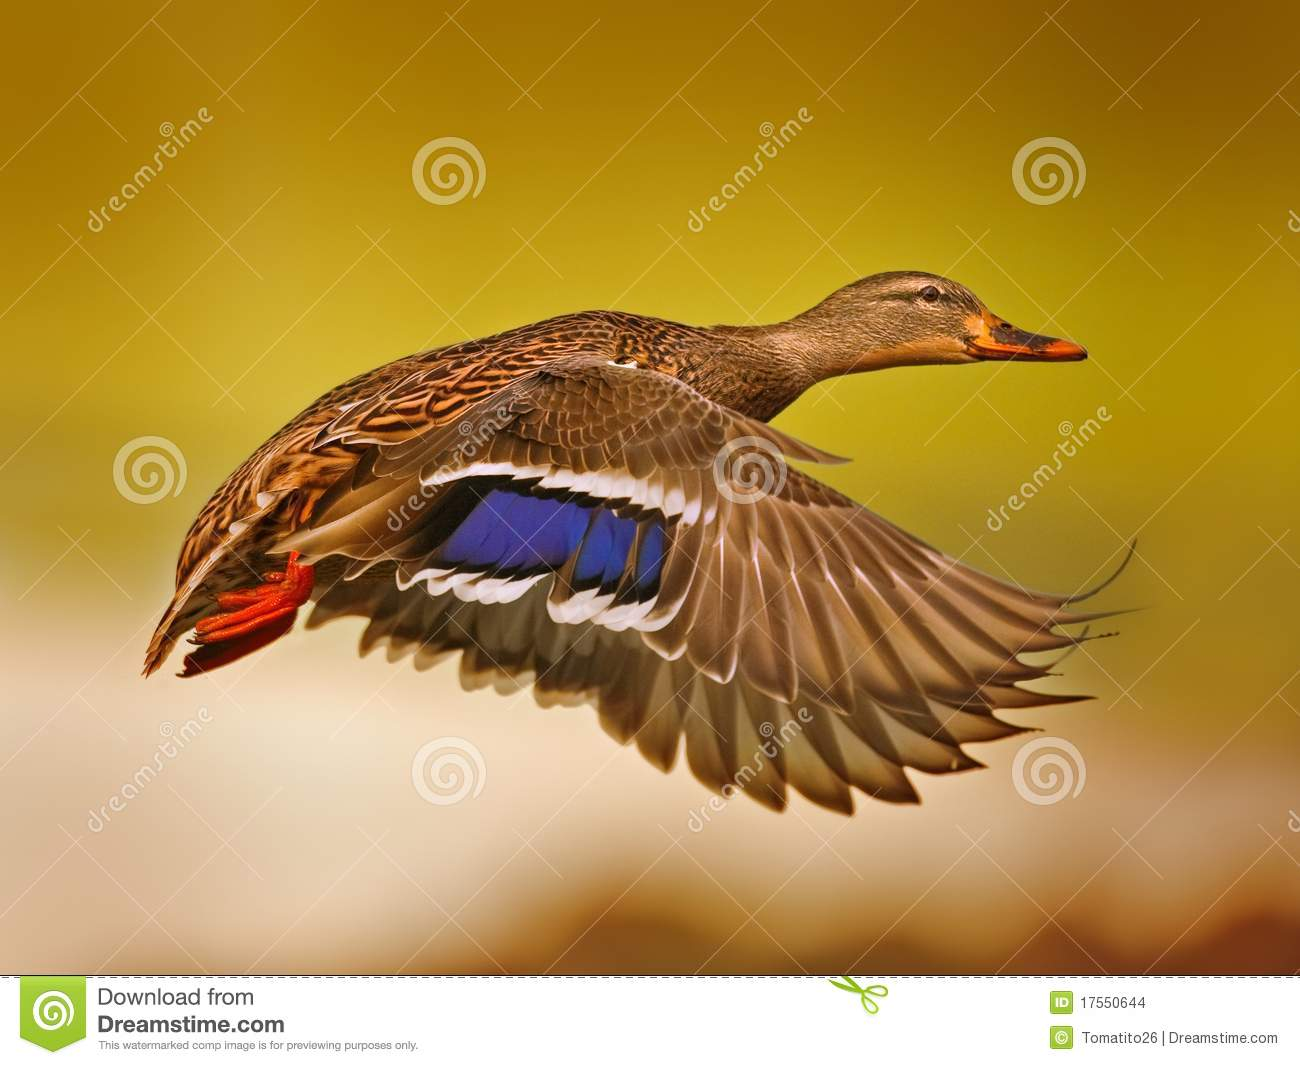 Flying Birds Free Stock Photos Download 3 416 Free Stock: Flying Duck Stock Photo. Image Of Wildlife, Bokeh, Orange